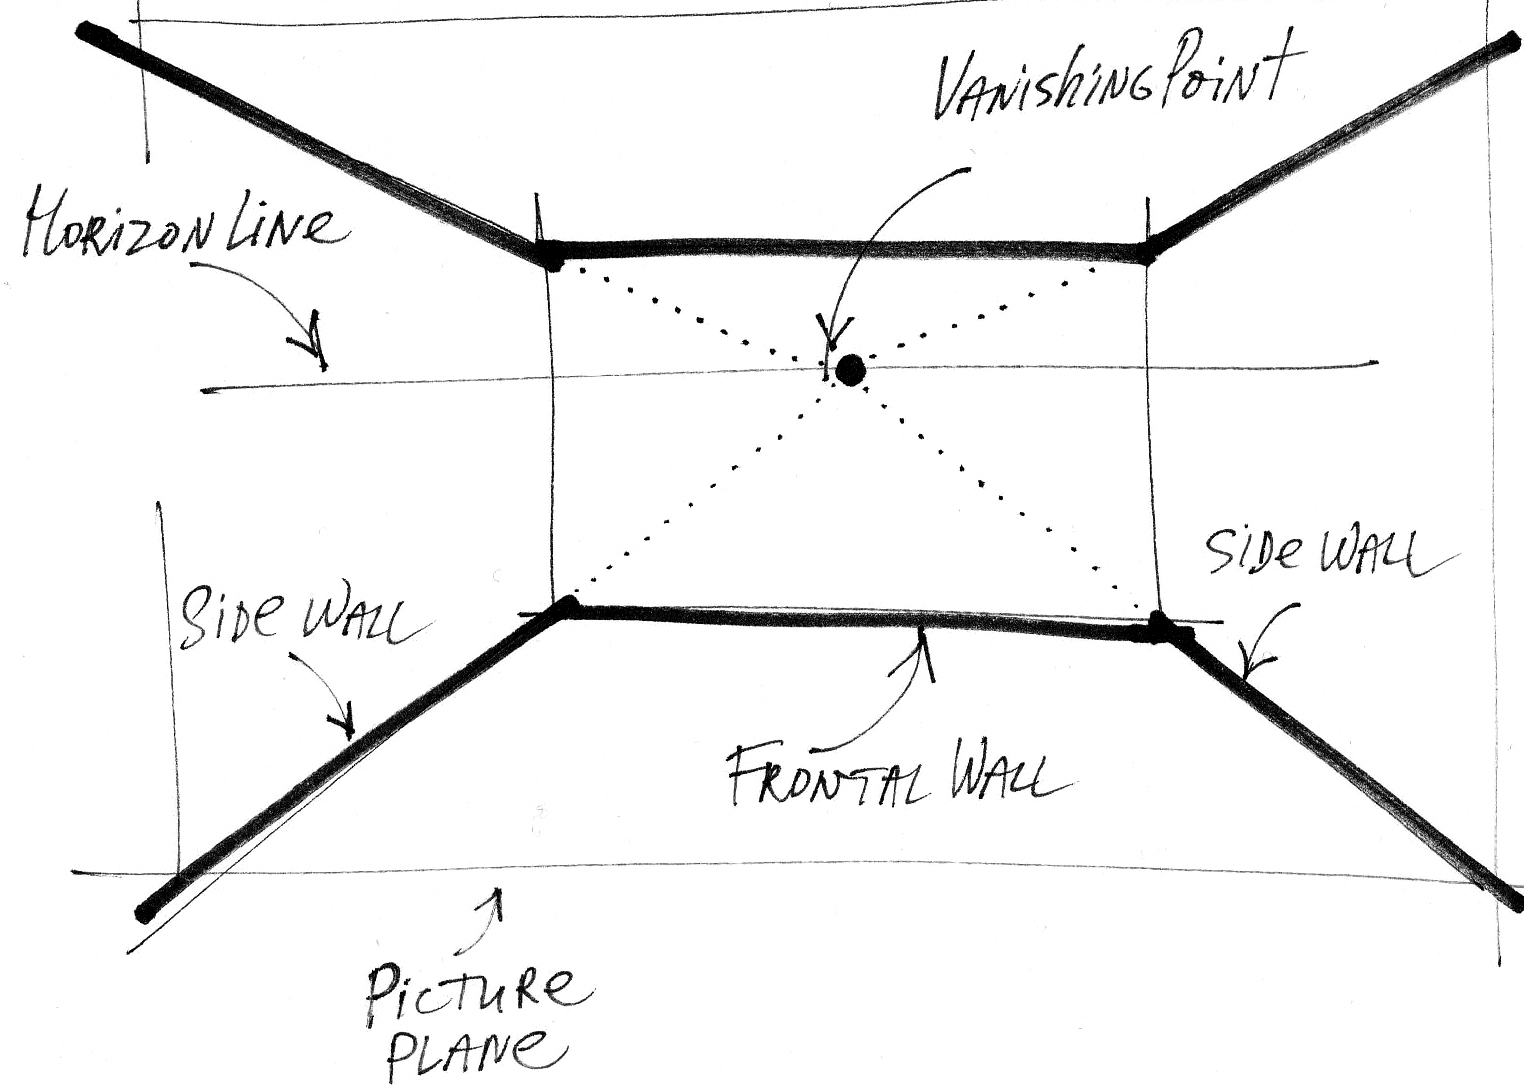 Interior design drawings perspective Simple What Is Perspective In Drawing Perspective Basics For Interior Designers Olgaart888 Interior Design Drawing With Markers My Video Courses Book Blog